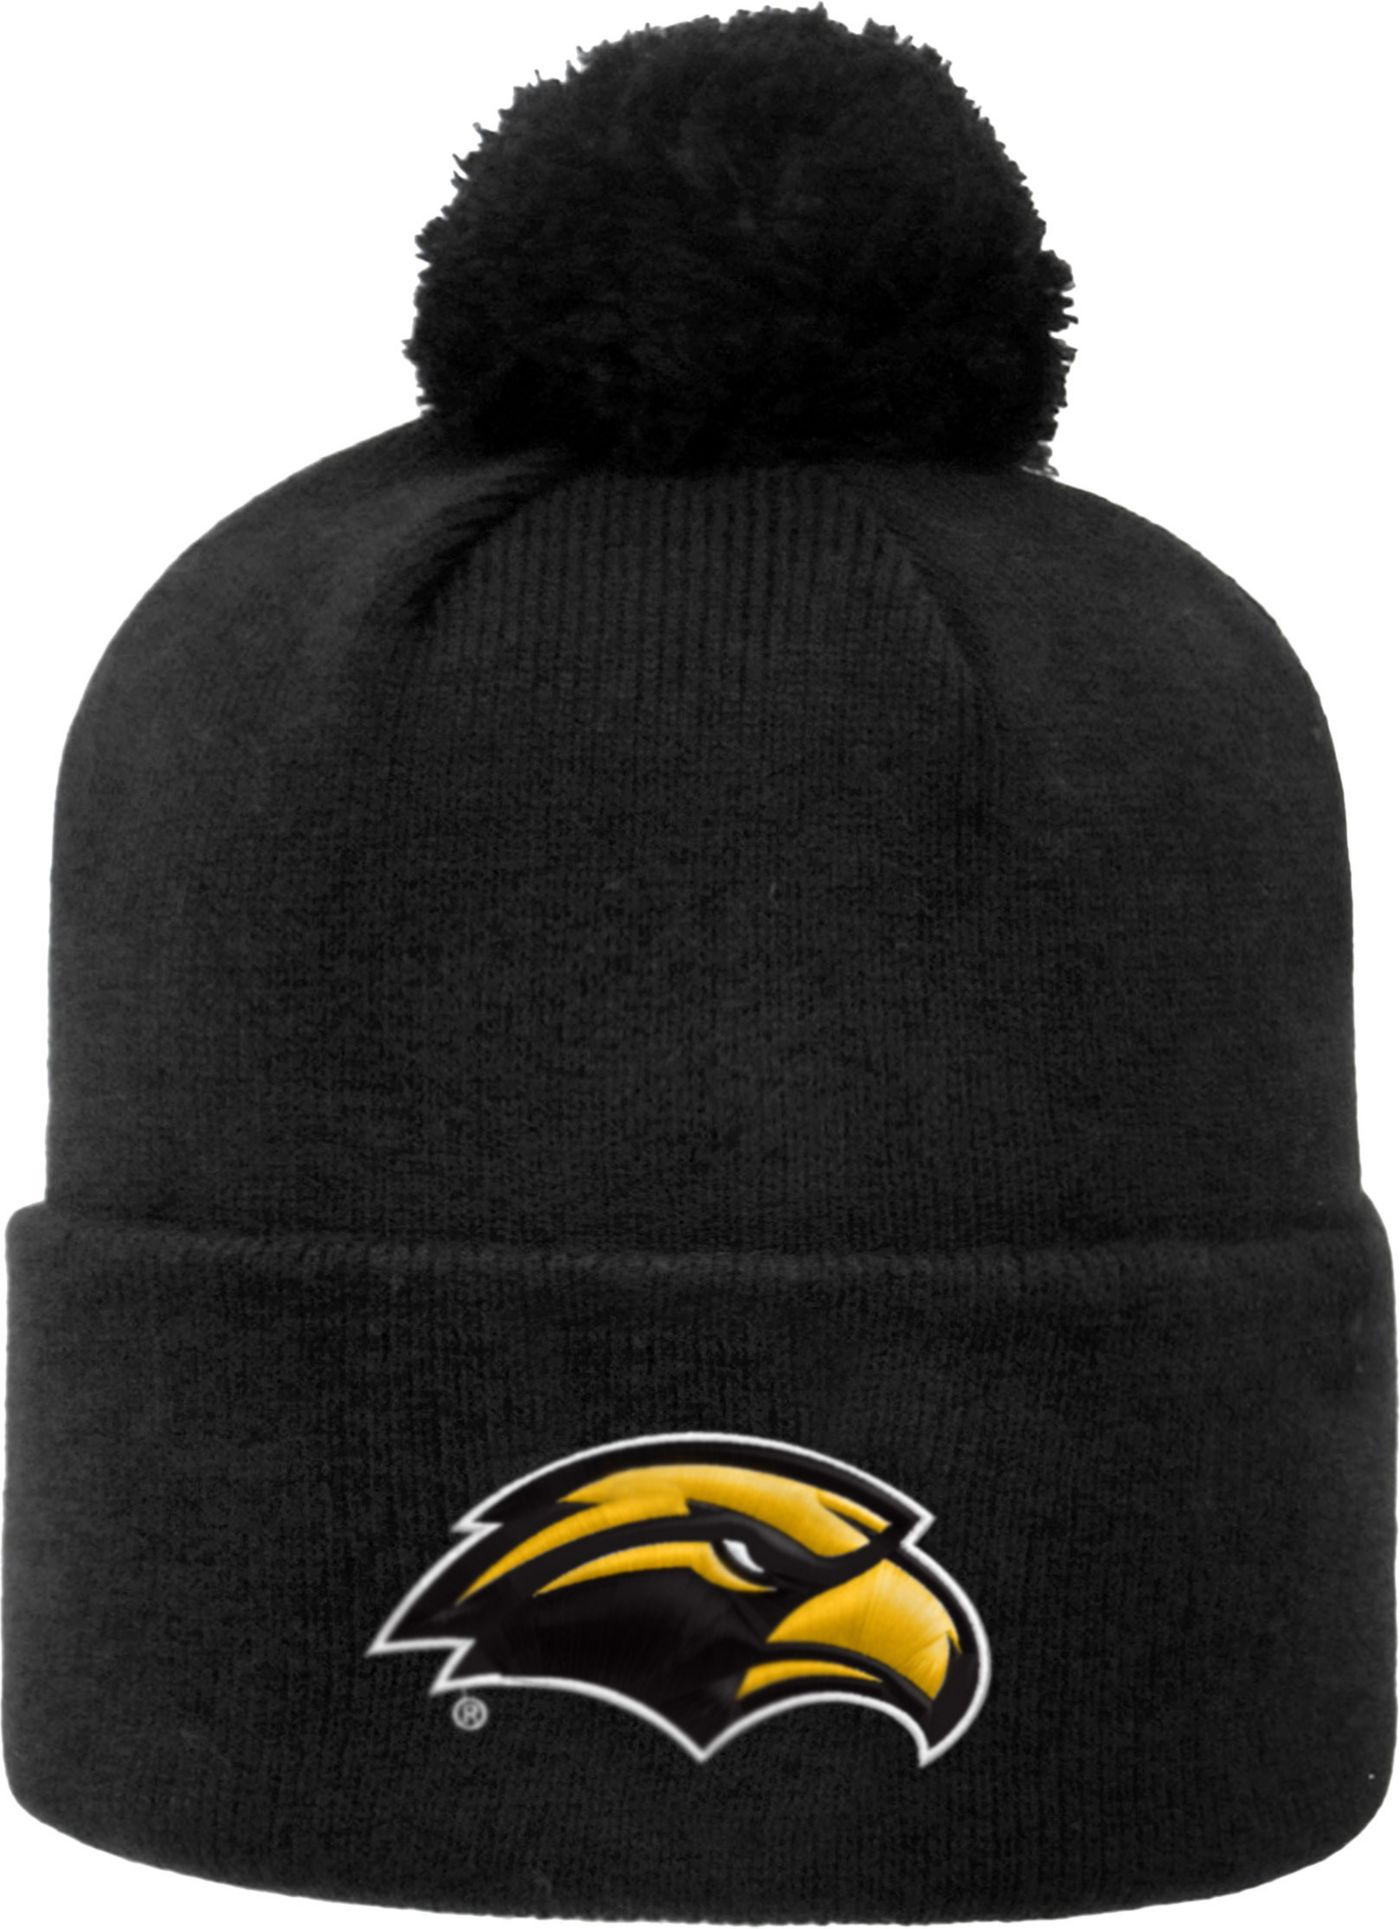 Top of the World Men's Southern Miss Golden Eagles Black Pom Knit Beanie